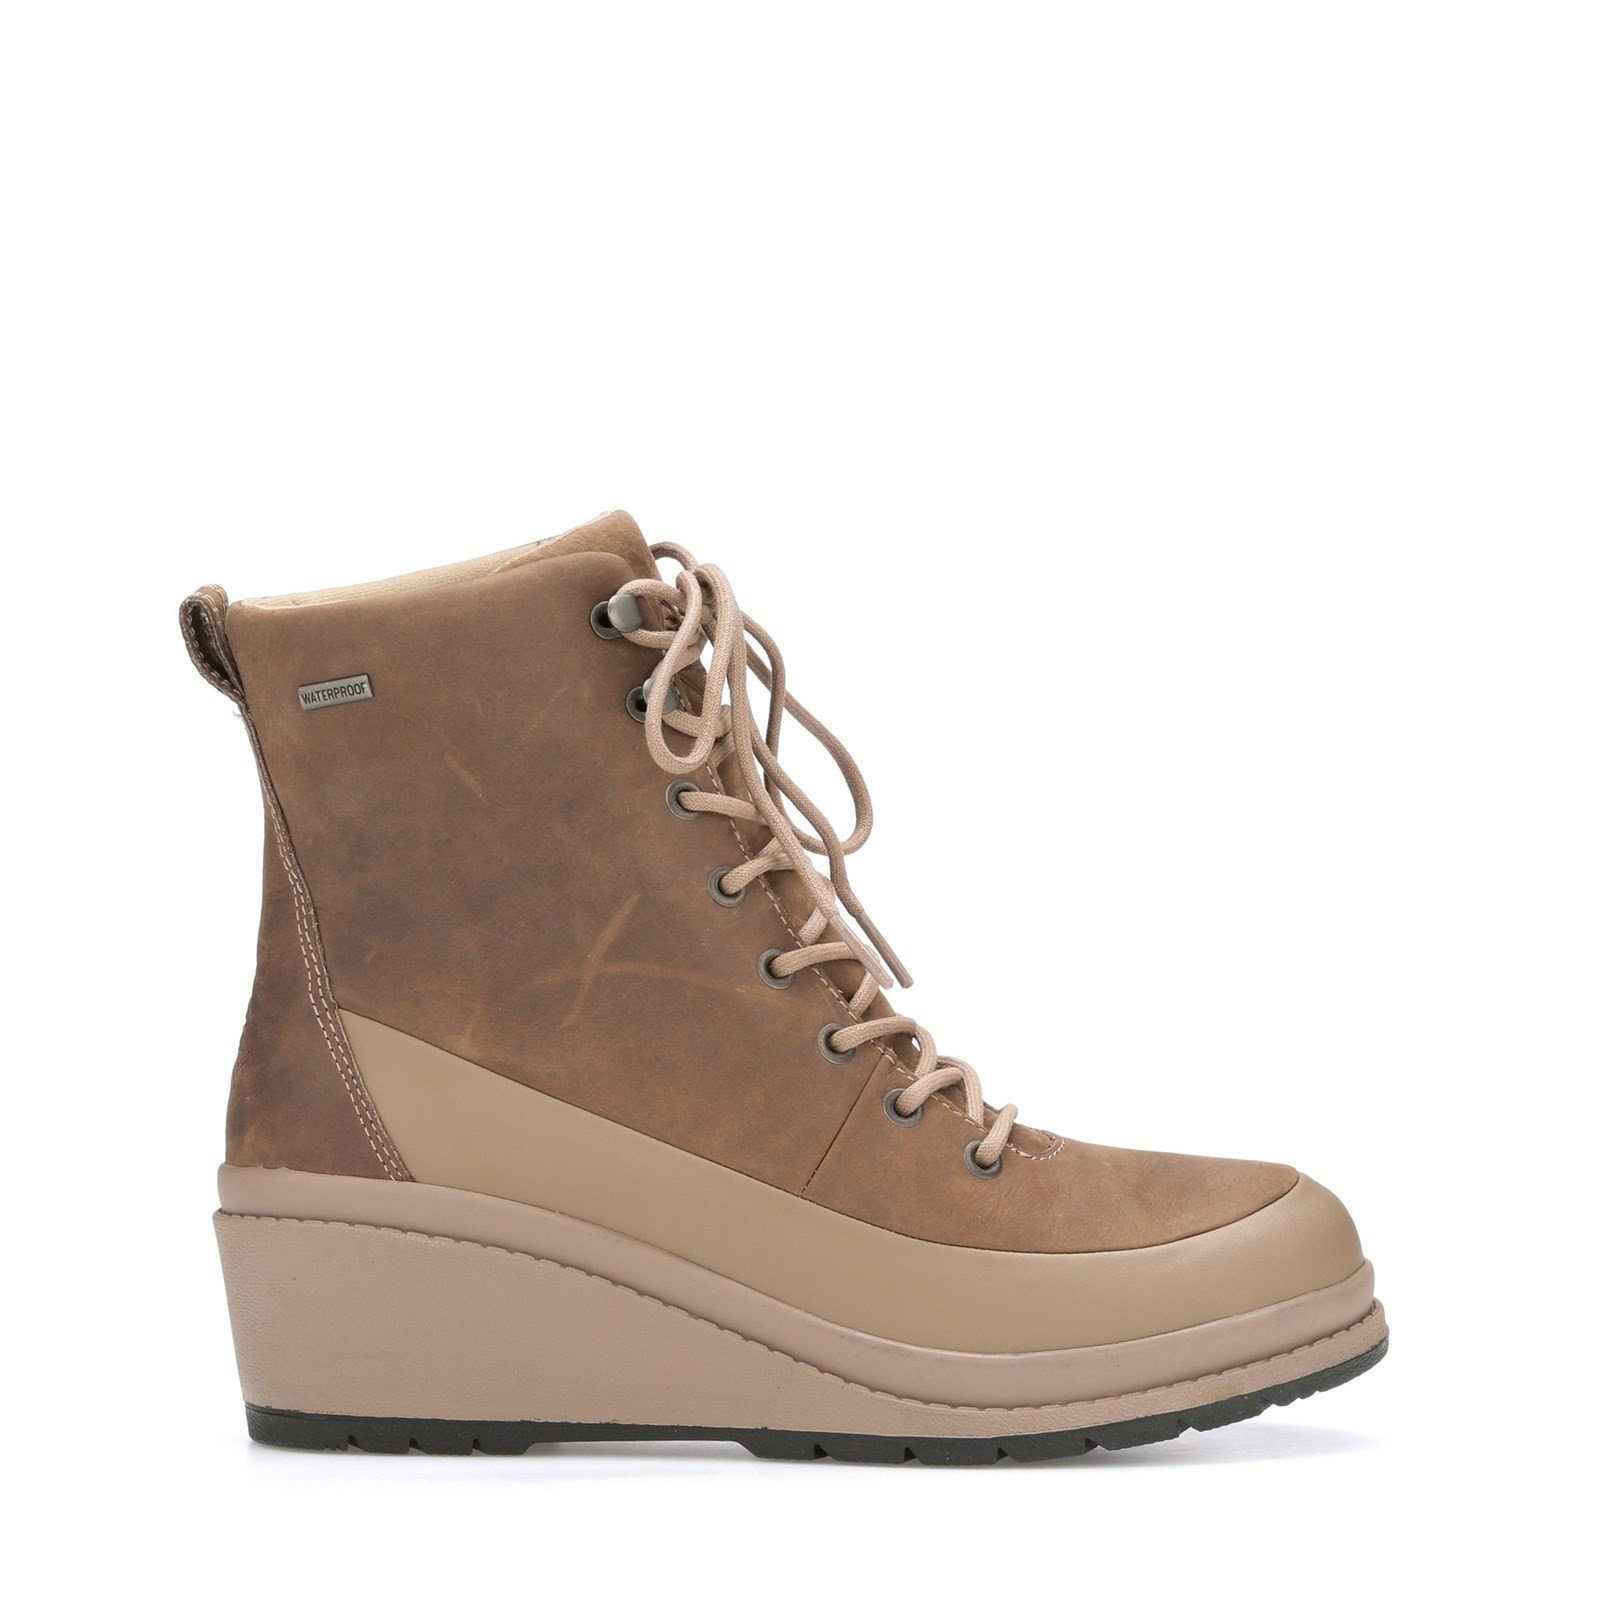 Muck Boots Women's Liberty Leather Ankle Boots Various Colours 31813 - Taupe 8